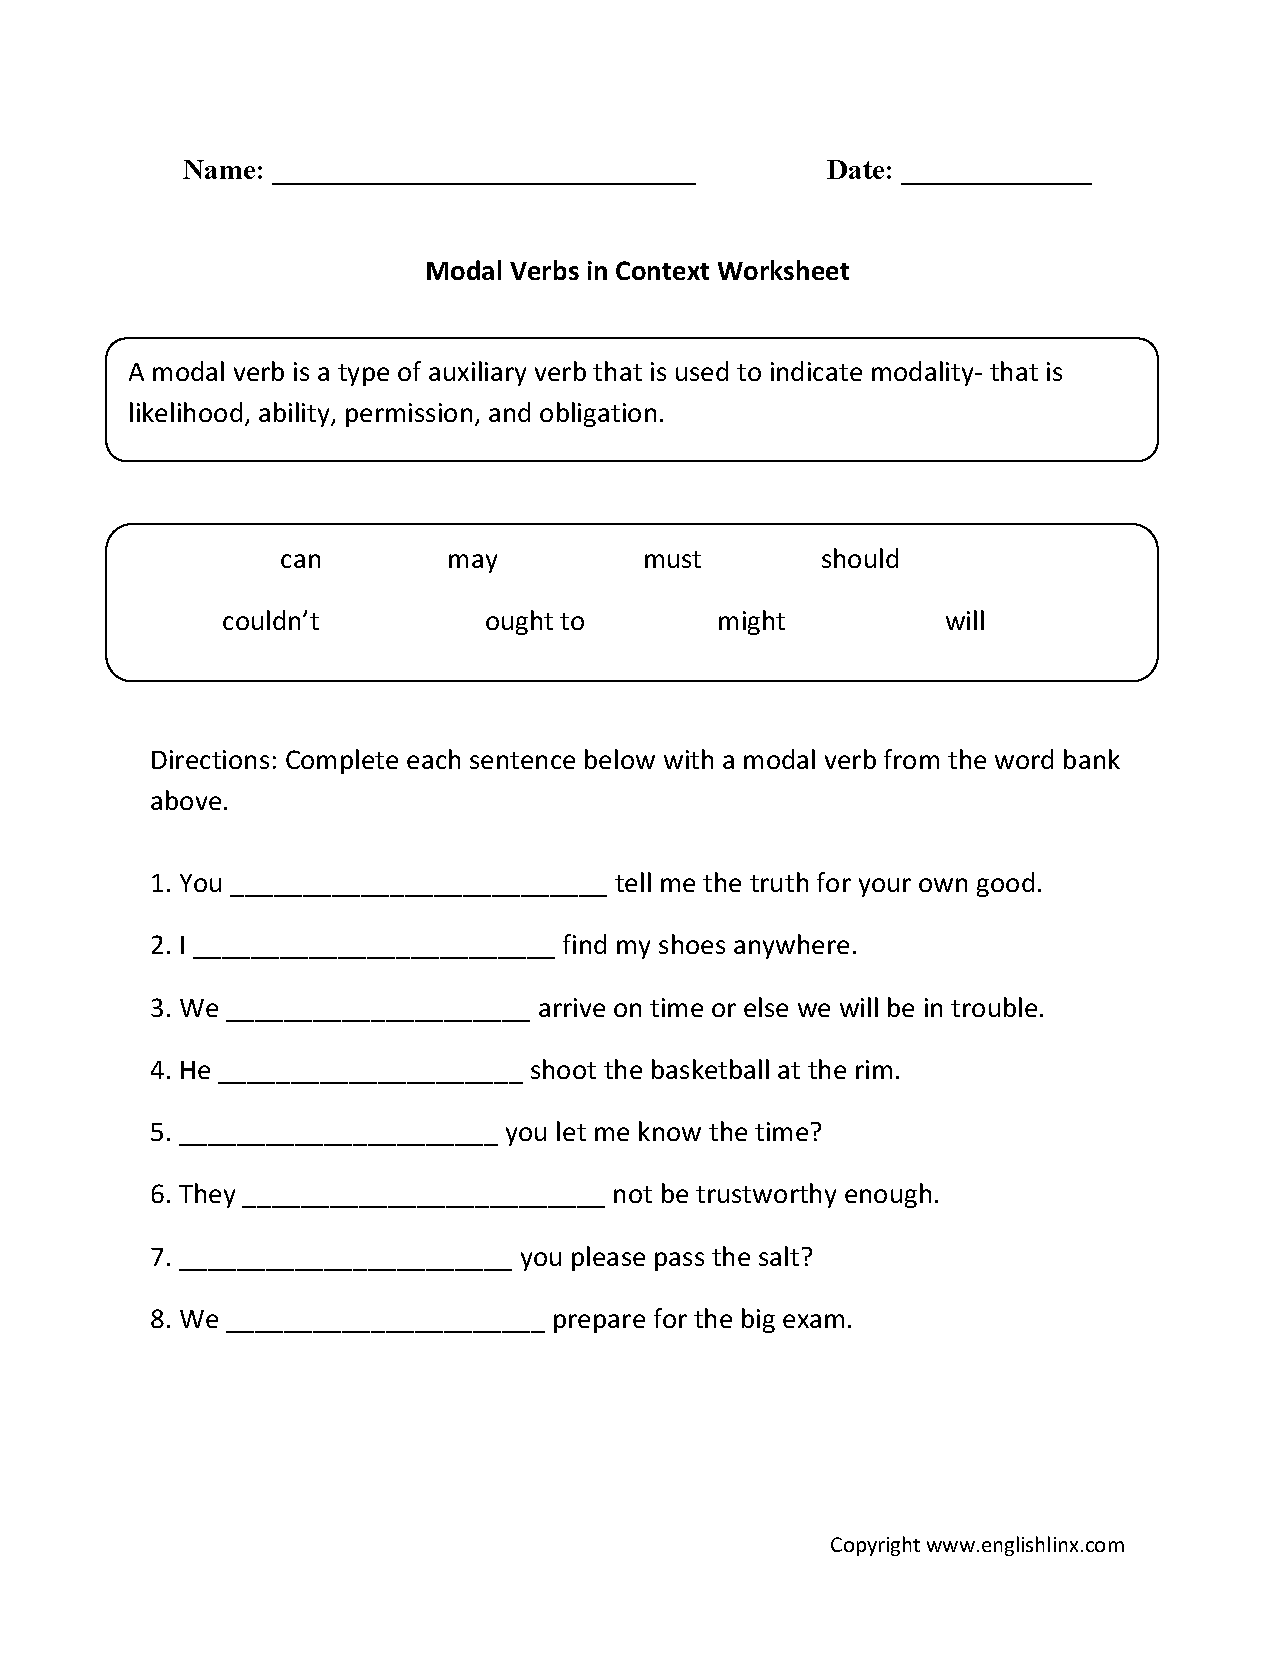 Modal Verbs In Context Worksheet